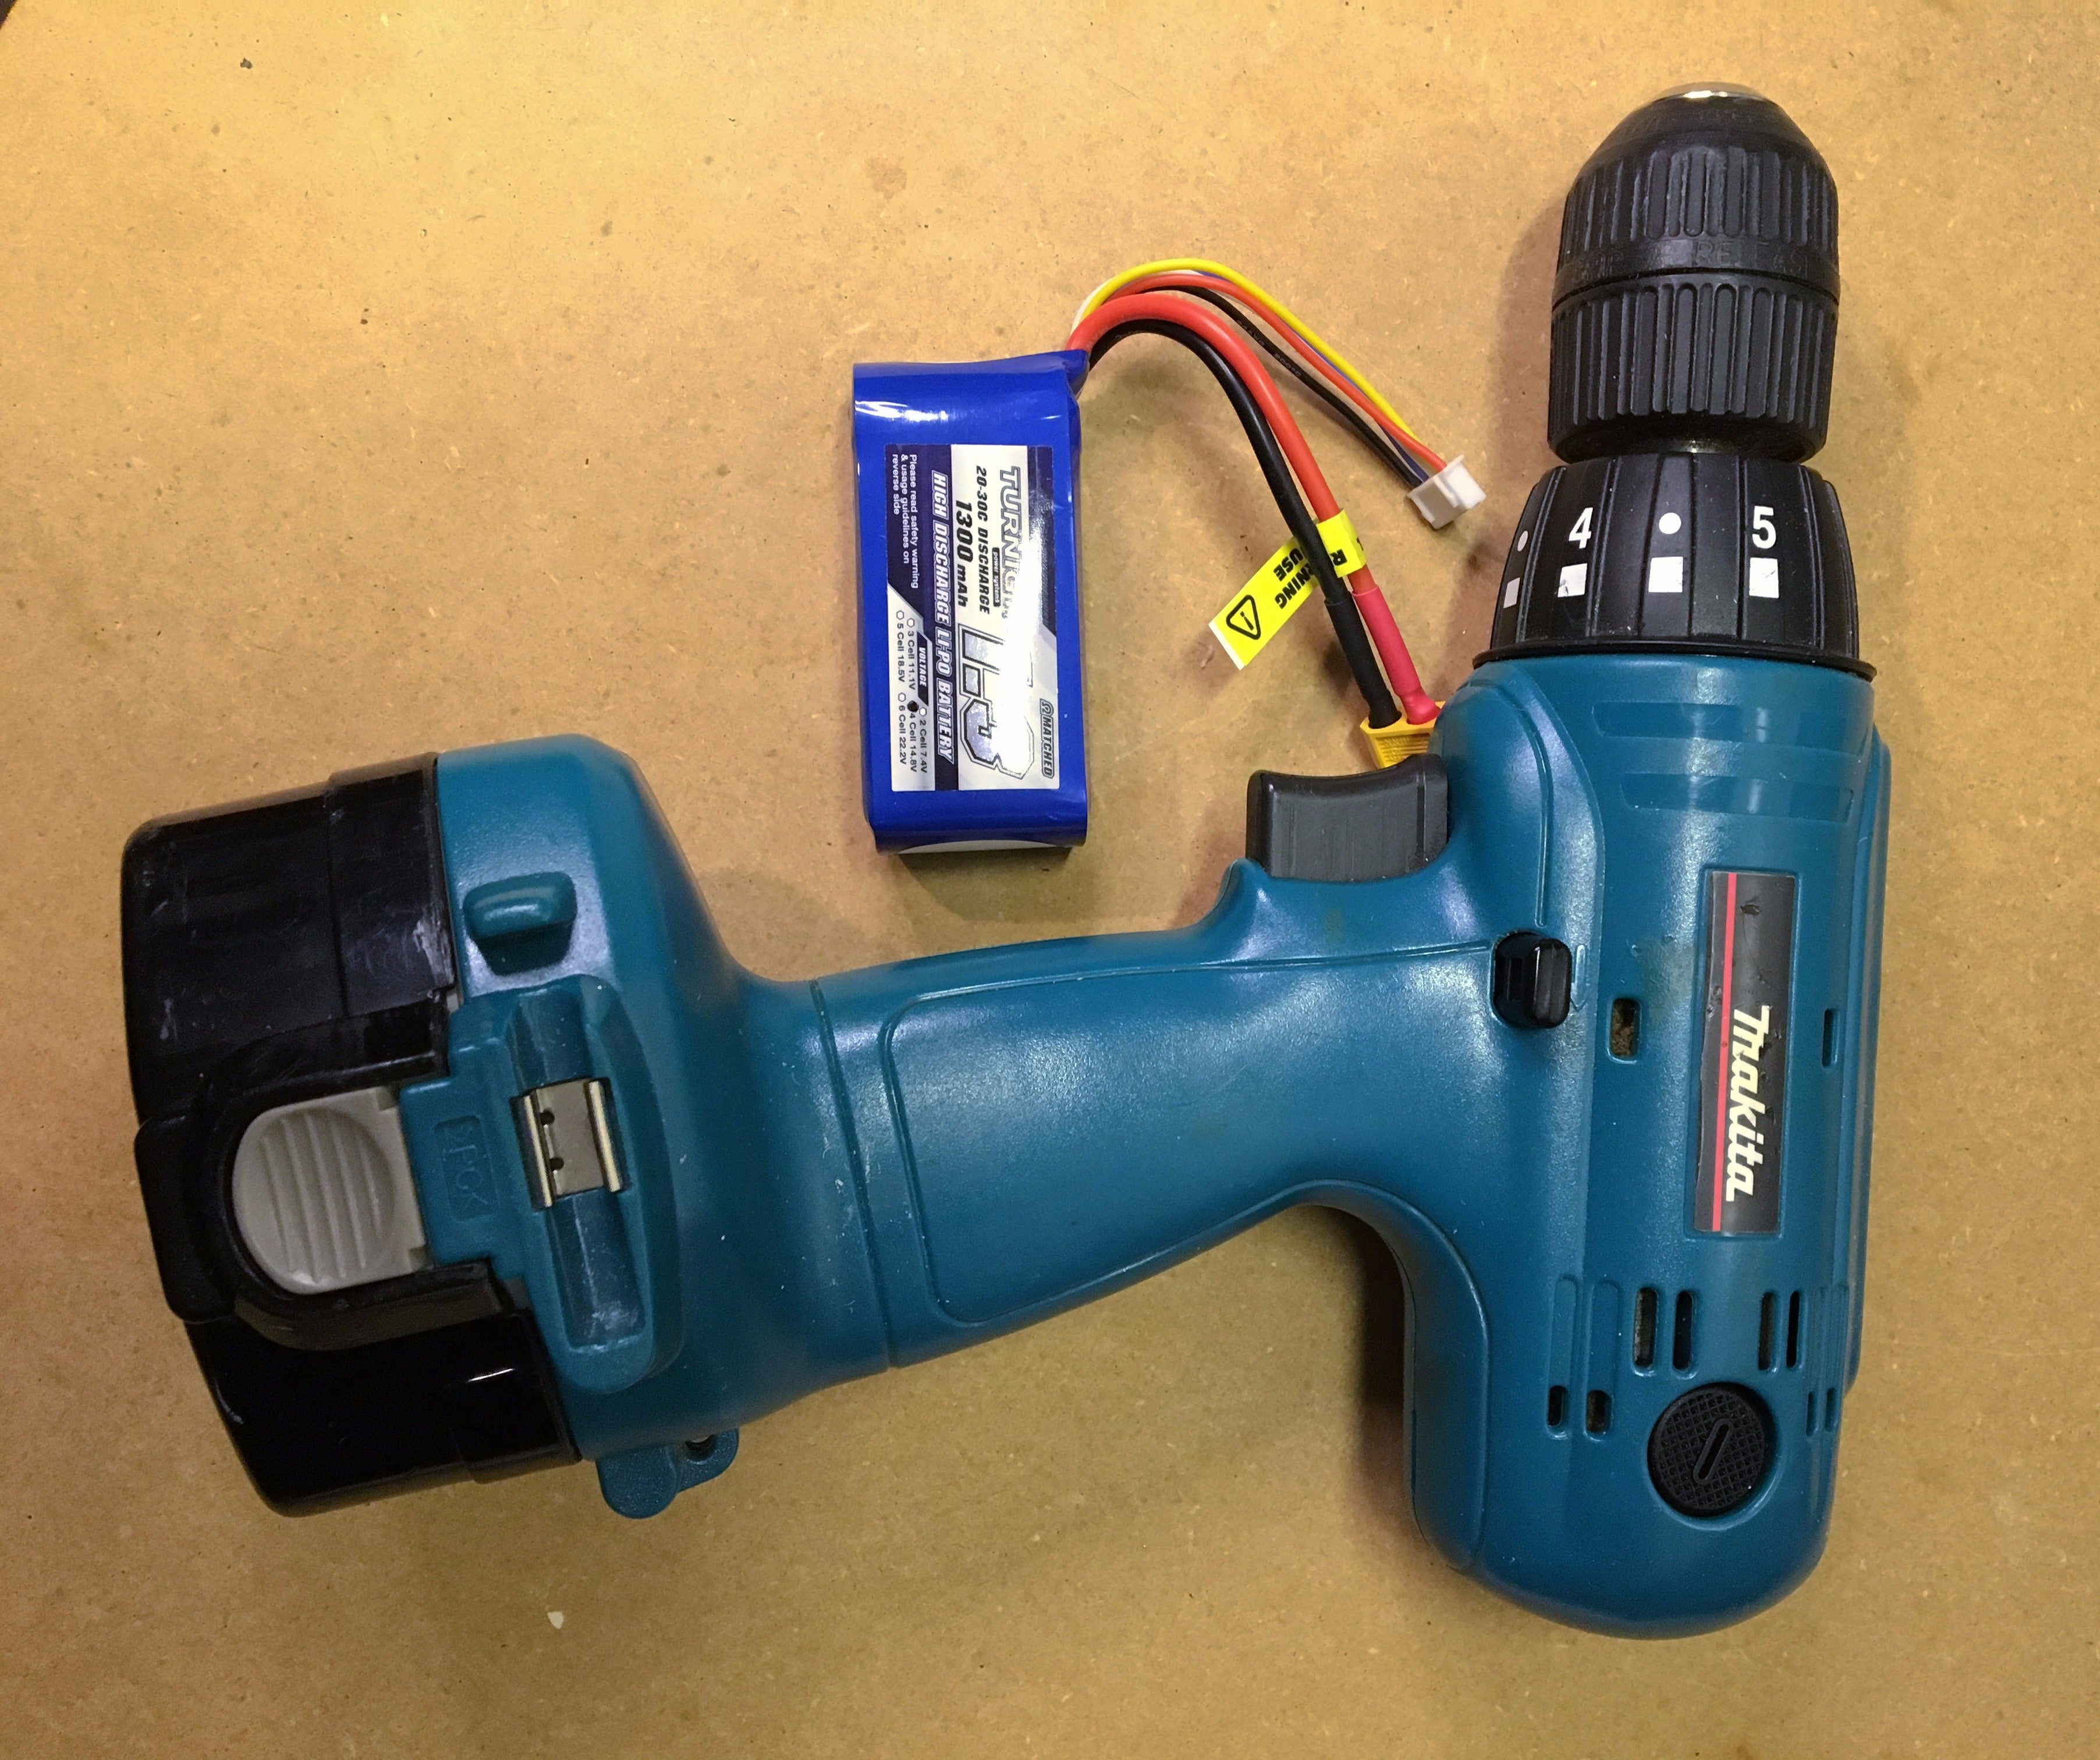 Harbor Freight Drill Master 18V Battery Convert to DIY Connection Adapter Robot